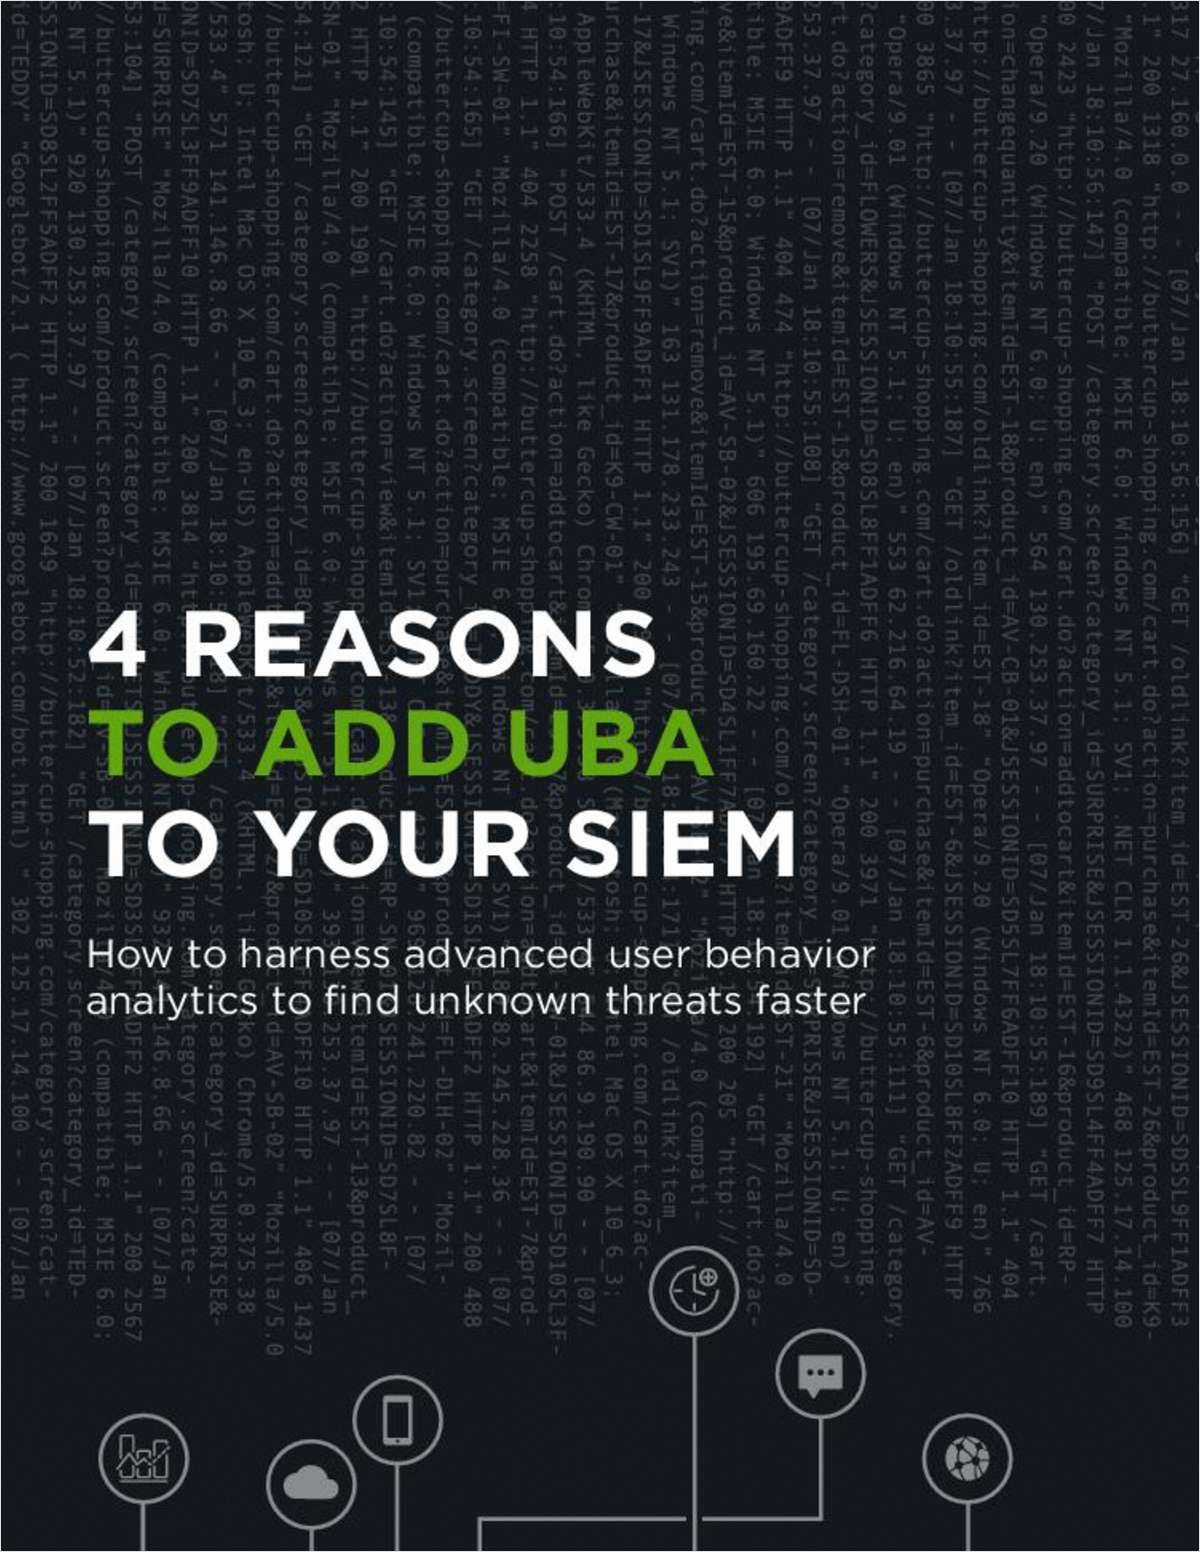 4 Reasons to Add UBA to Your SIEM